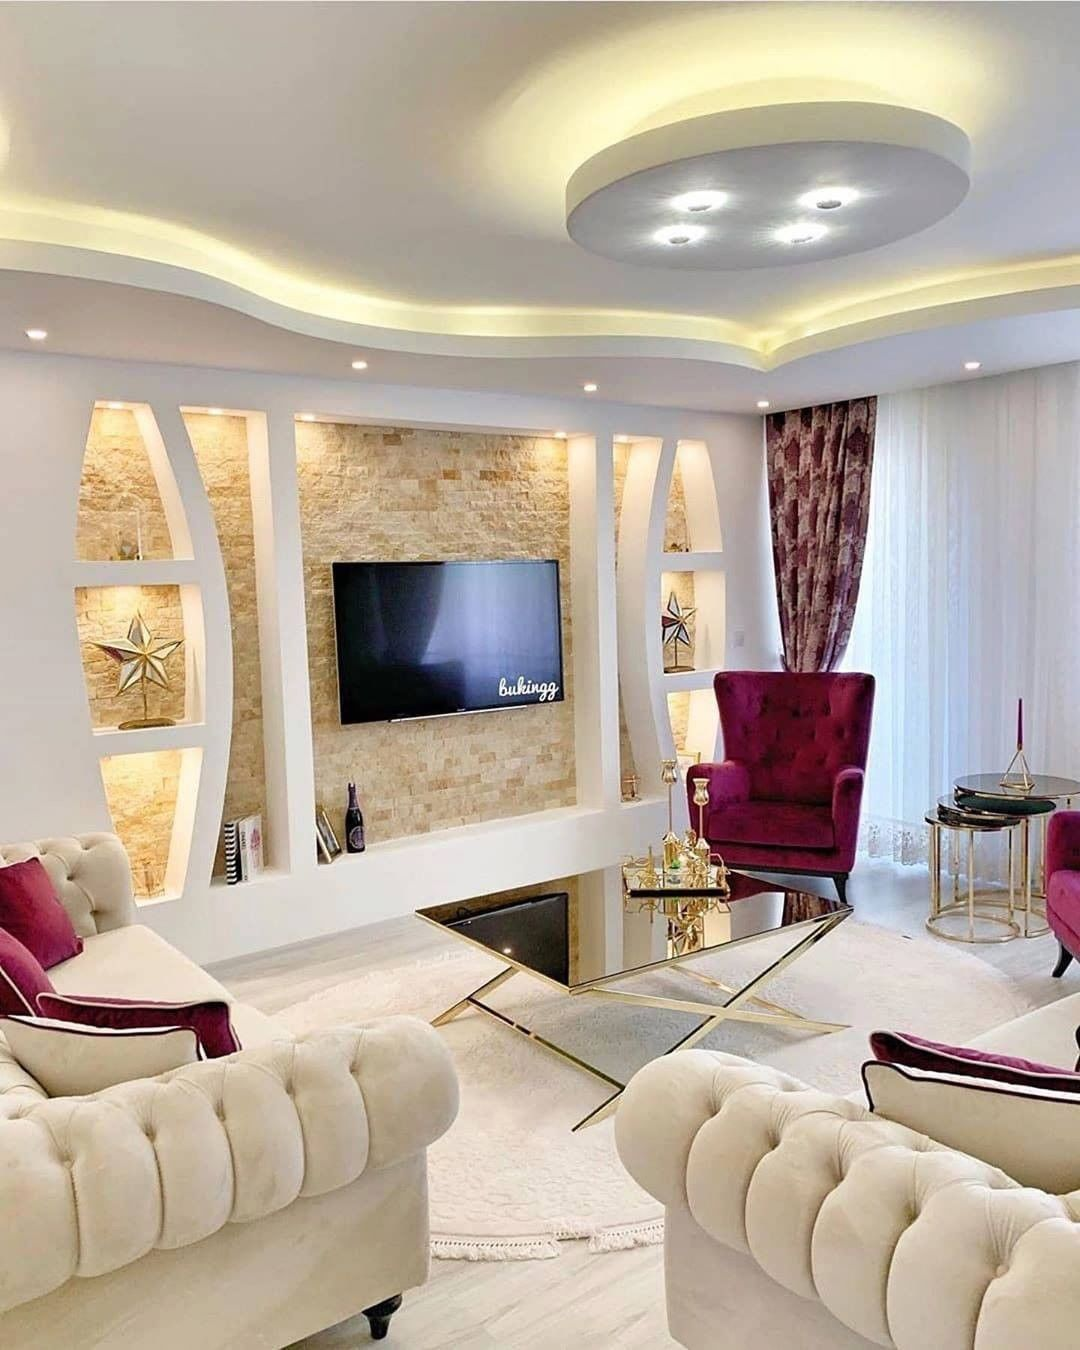 Cool Home Decorating Ideas for 2021 (41)